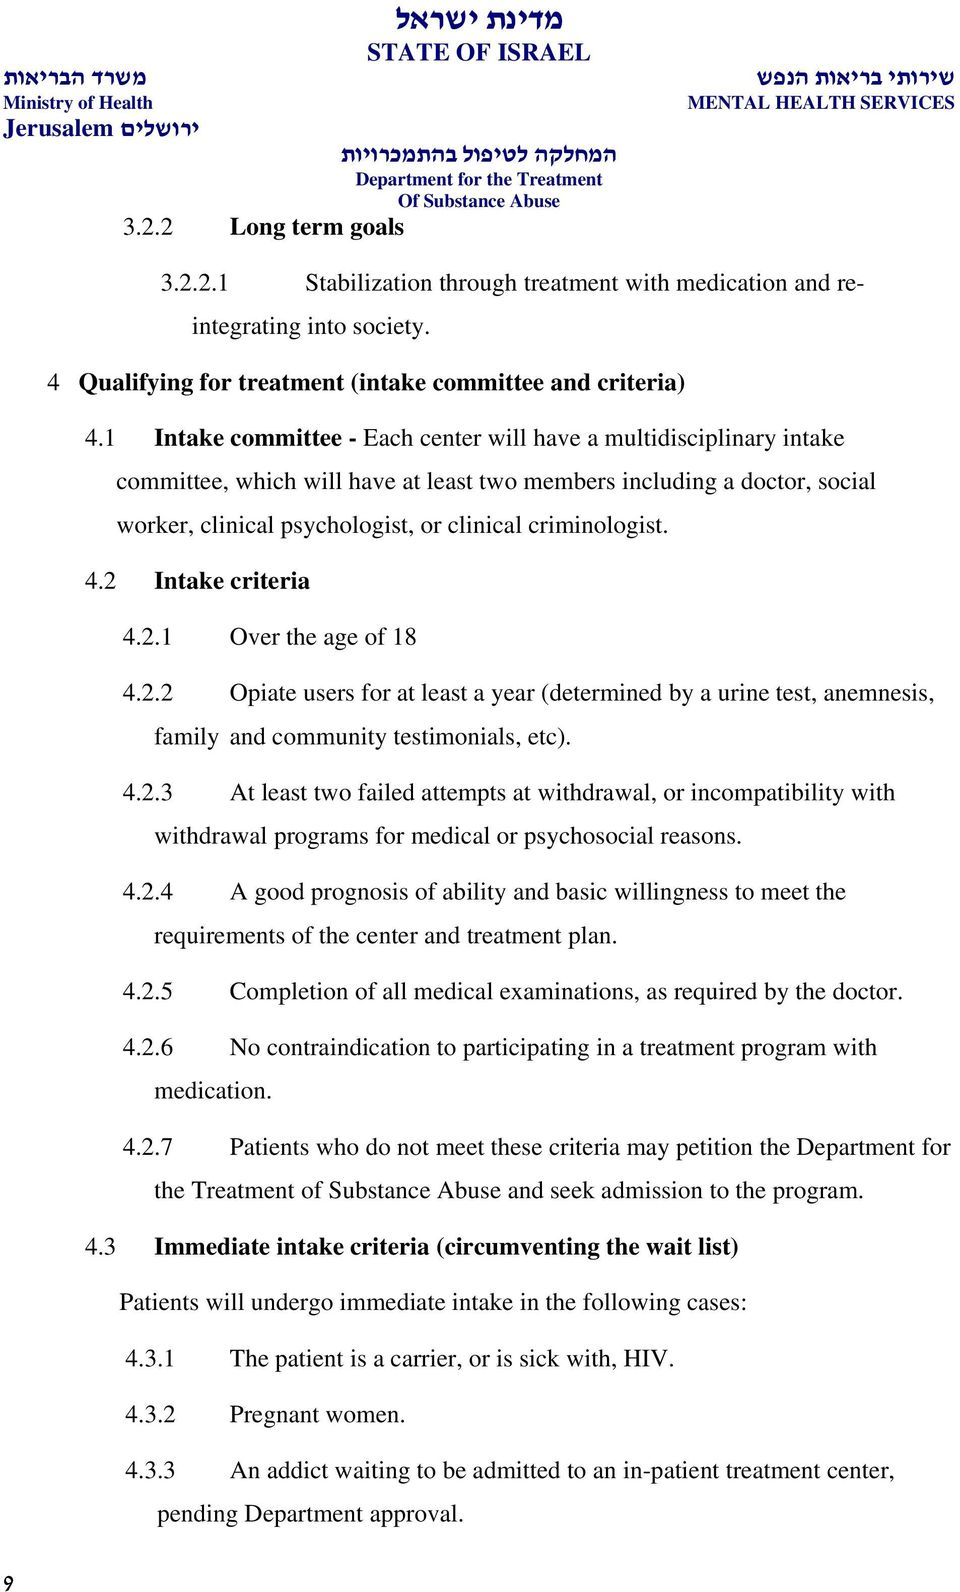 criminologist. 4.2 Intake criteria 4.2.1 Over the age of 18 4.2.2 Opiate users for at least a year (determined by a urine test, anemnesis, family and community testimonials, etc). 4.2.3 At least two failed attempts at withdrawal, or incompatibility with withdrawal programs for medical or psychosocial reasons.